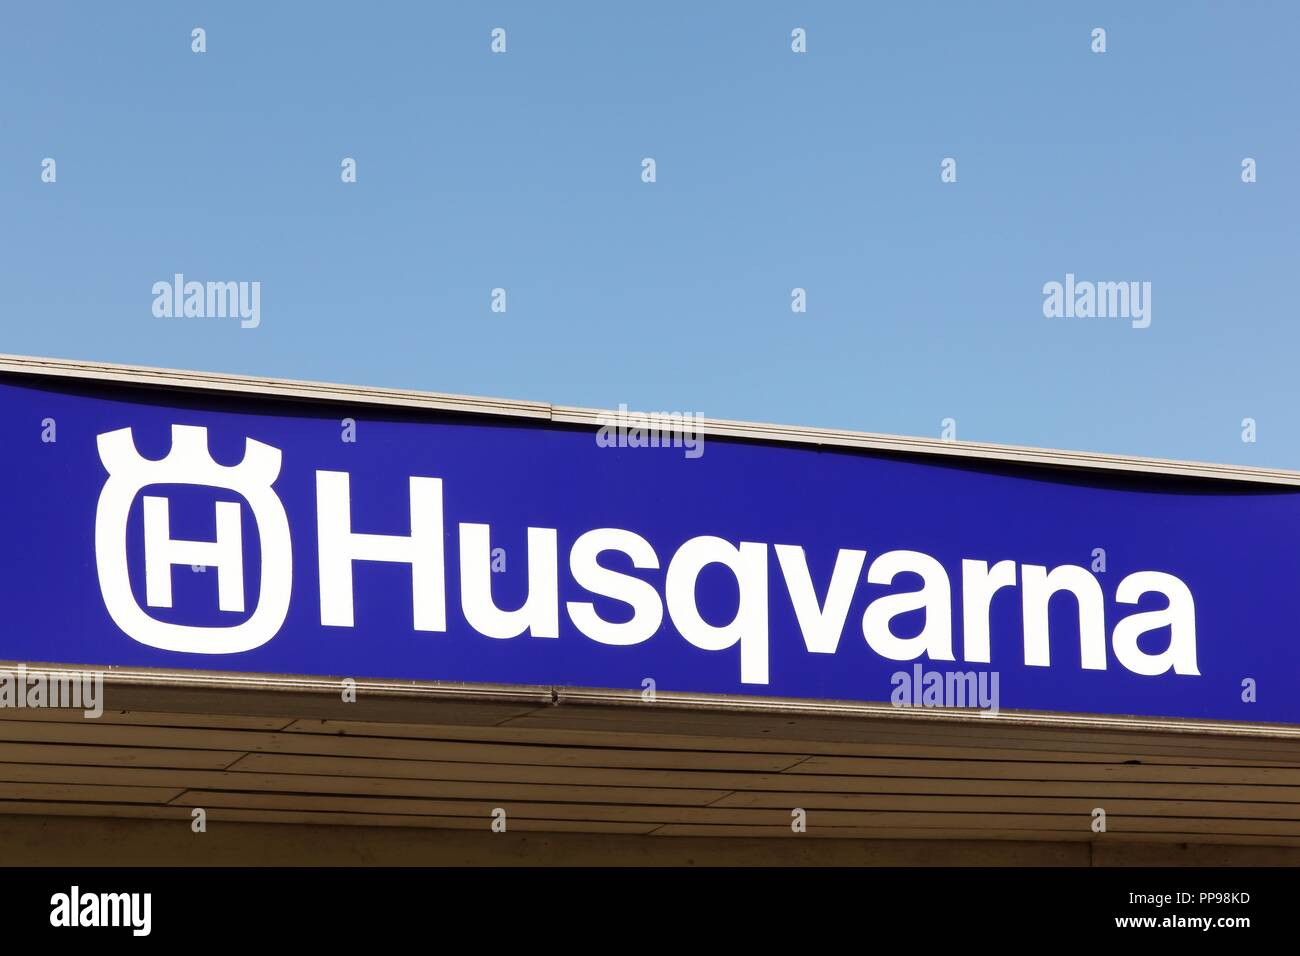 Odder, Denmark - March 30, 2018: Husqvarna logo on a facade. Husqvarna is swedish a manufacturer of robotic mowers, garden tractors, chainsaws - Stock Image